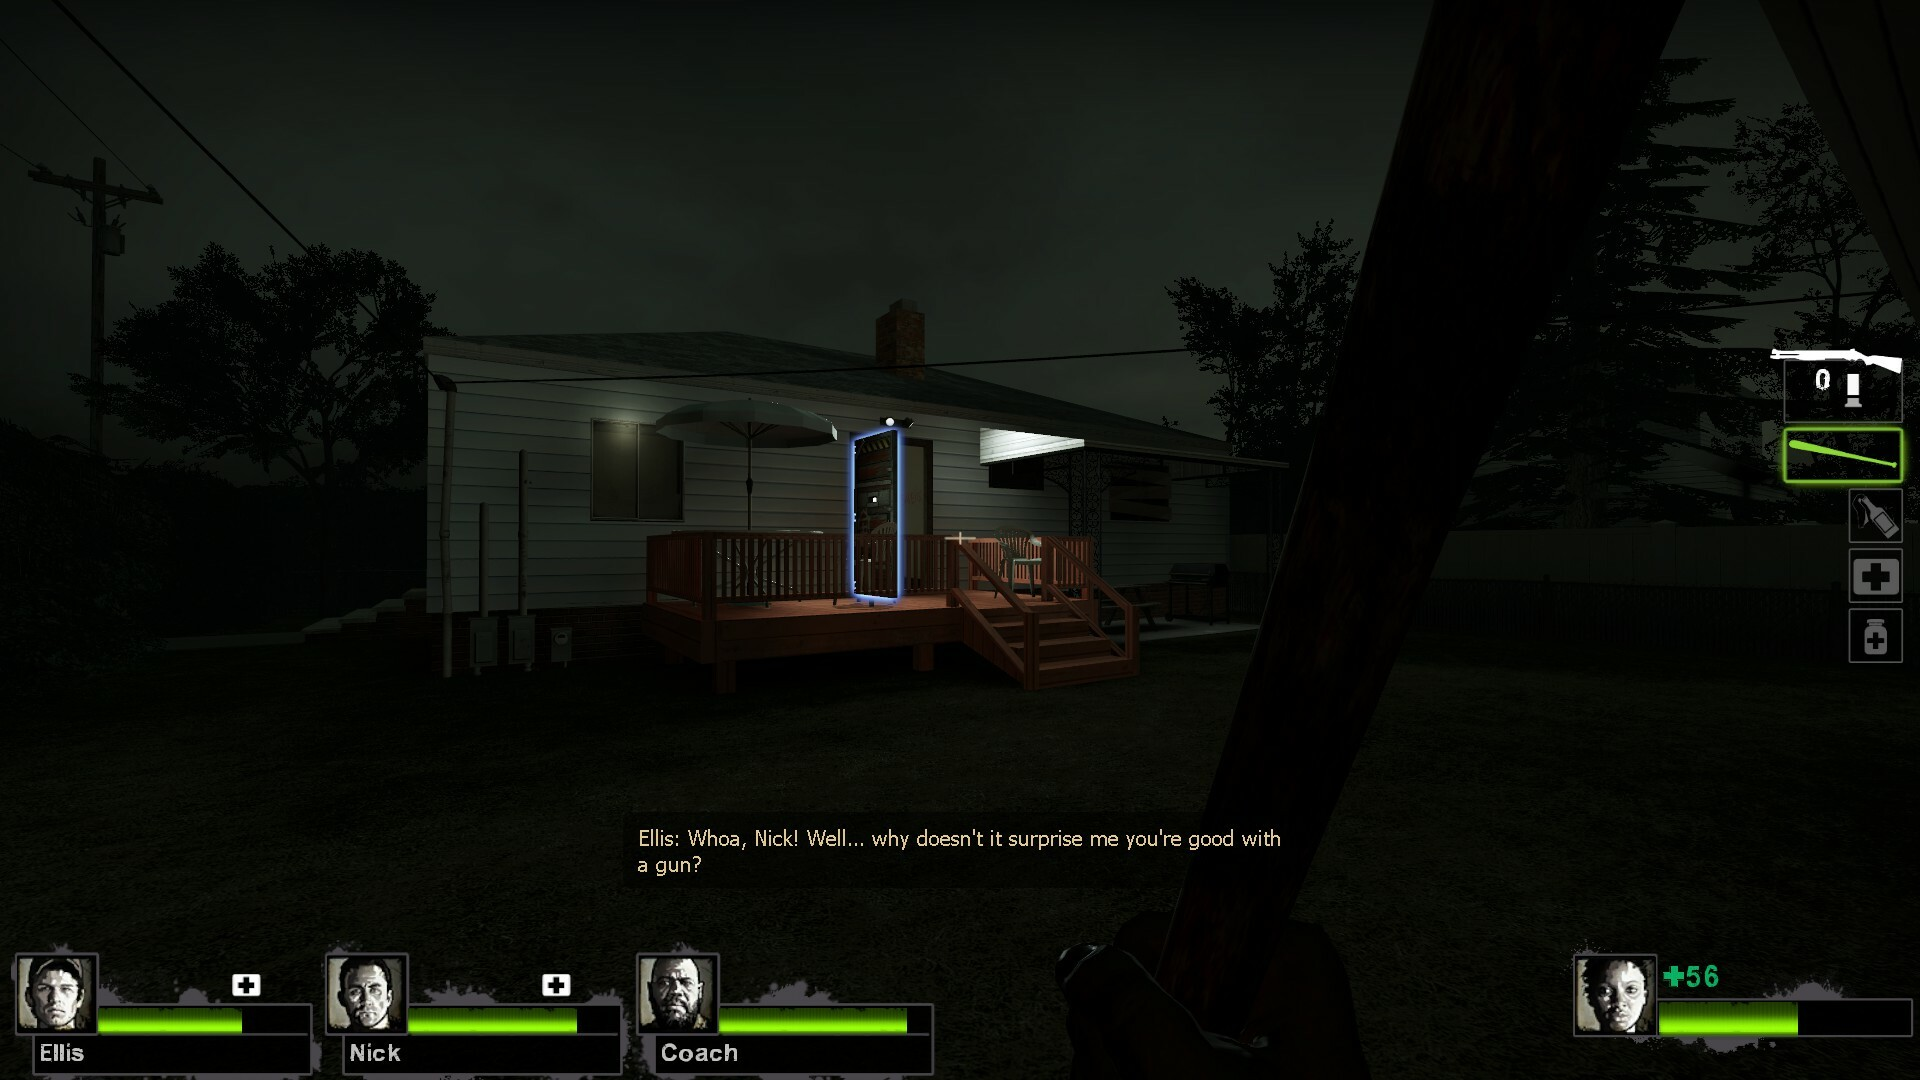 The last house players find is the safe house which will trigger the next level. Large glowing door helps player spot this easily in the dark as they're moving towards it.